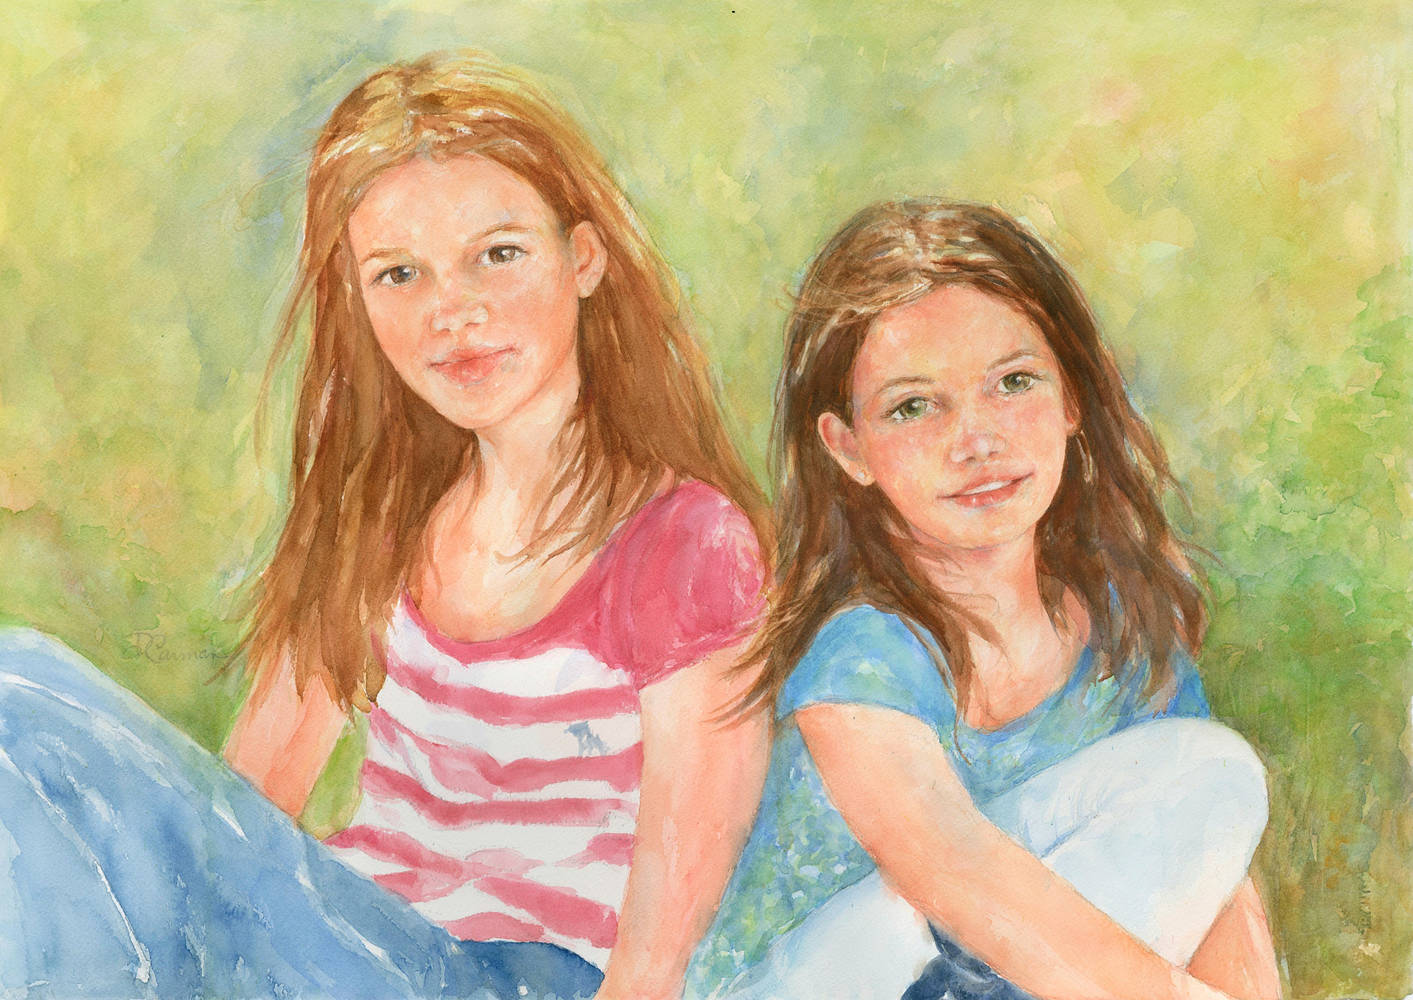 Sisters by Deborah Carman